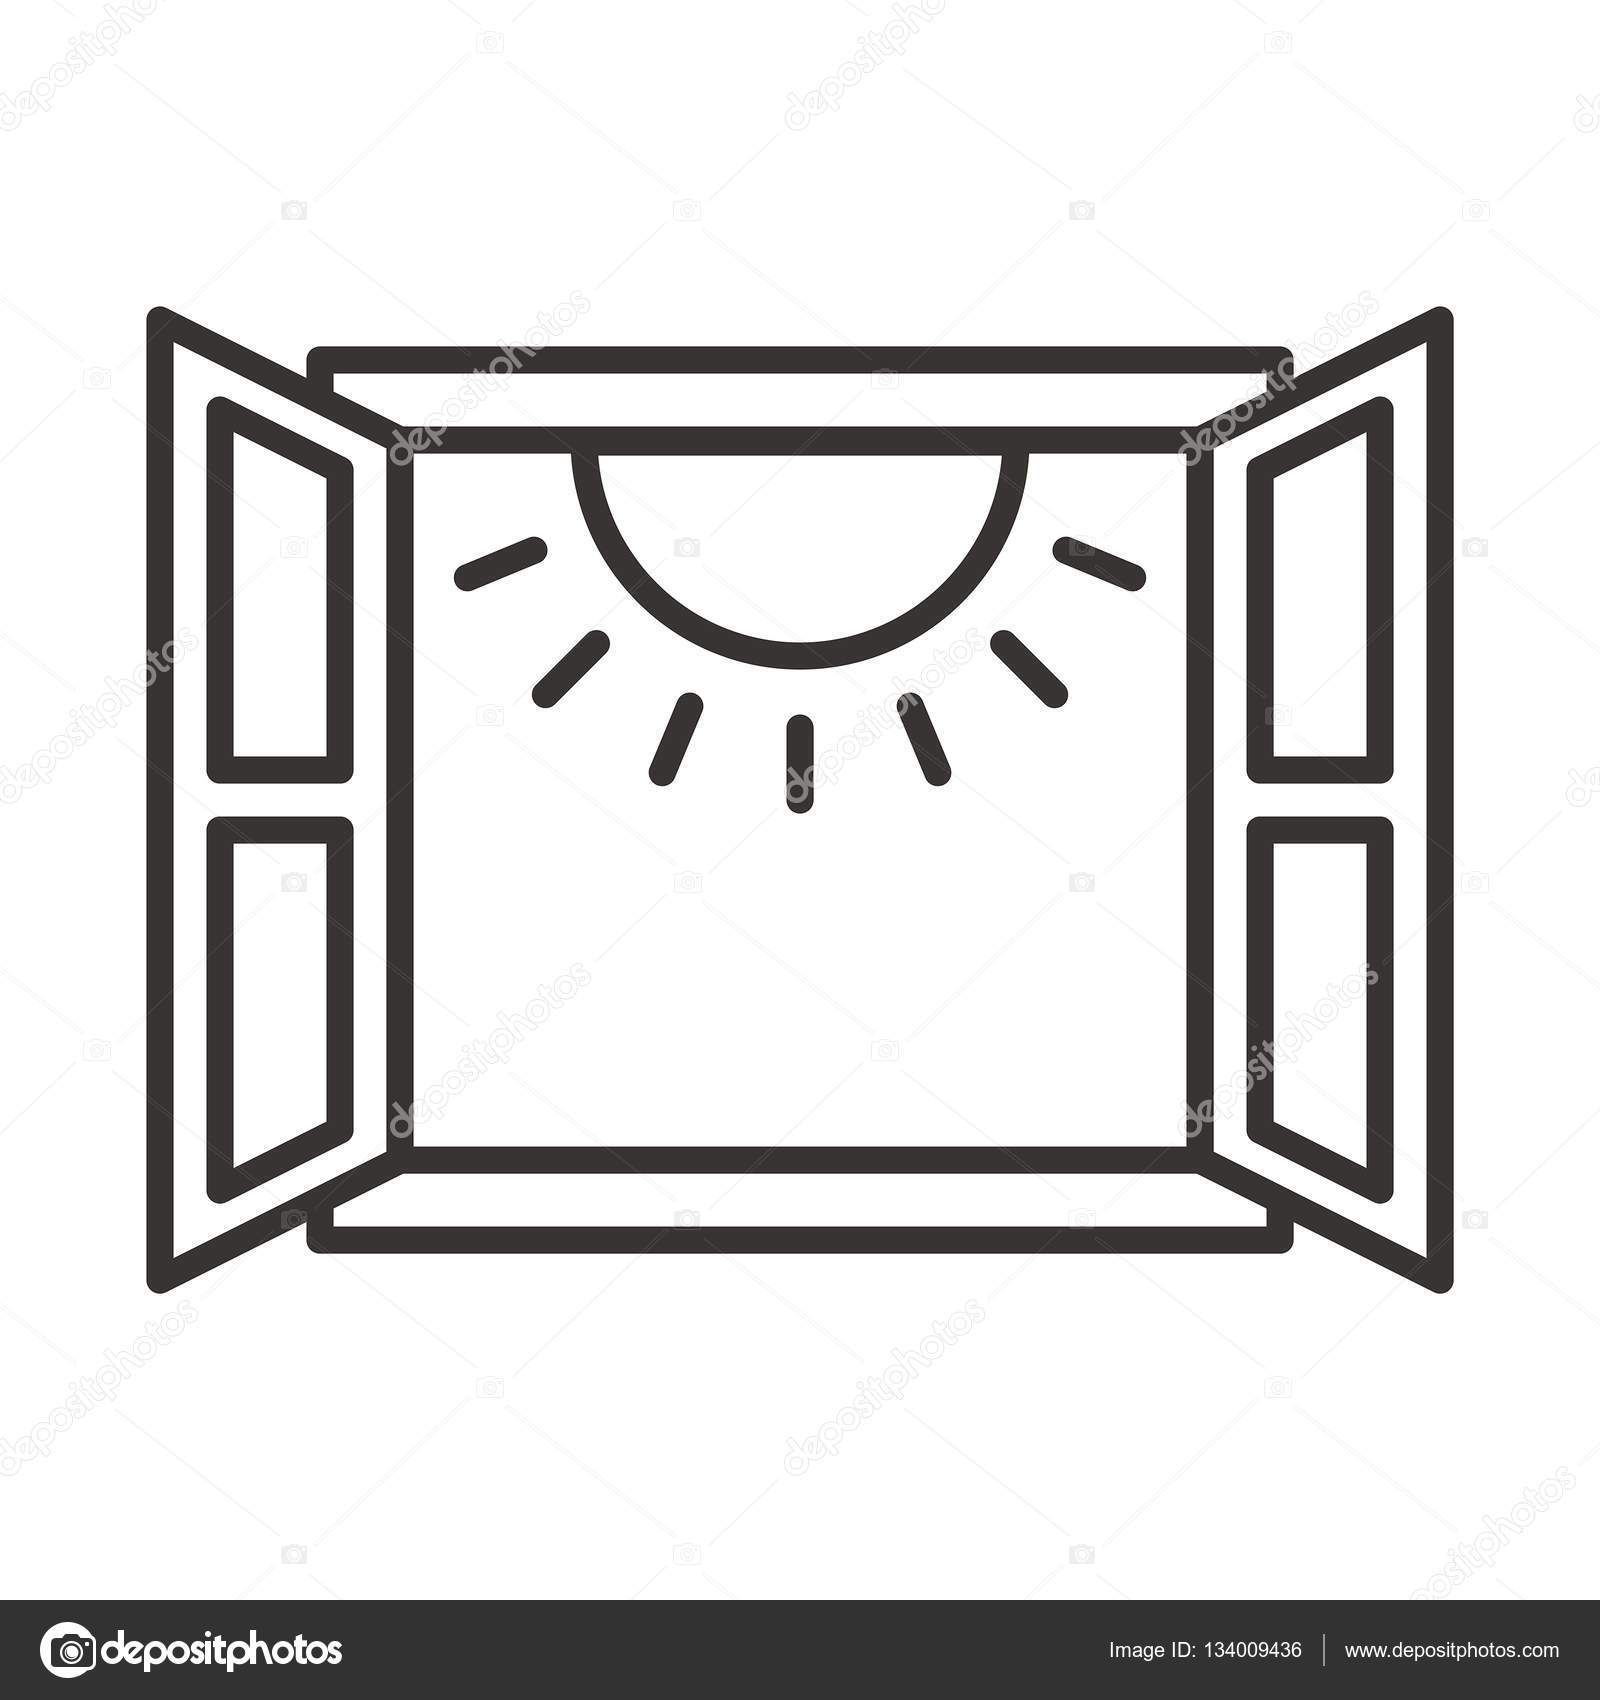 Window clipart black and white picture black and white Open window clipart black and white 2 » Clipart Portal picture black and white